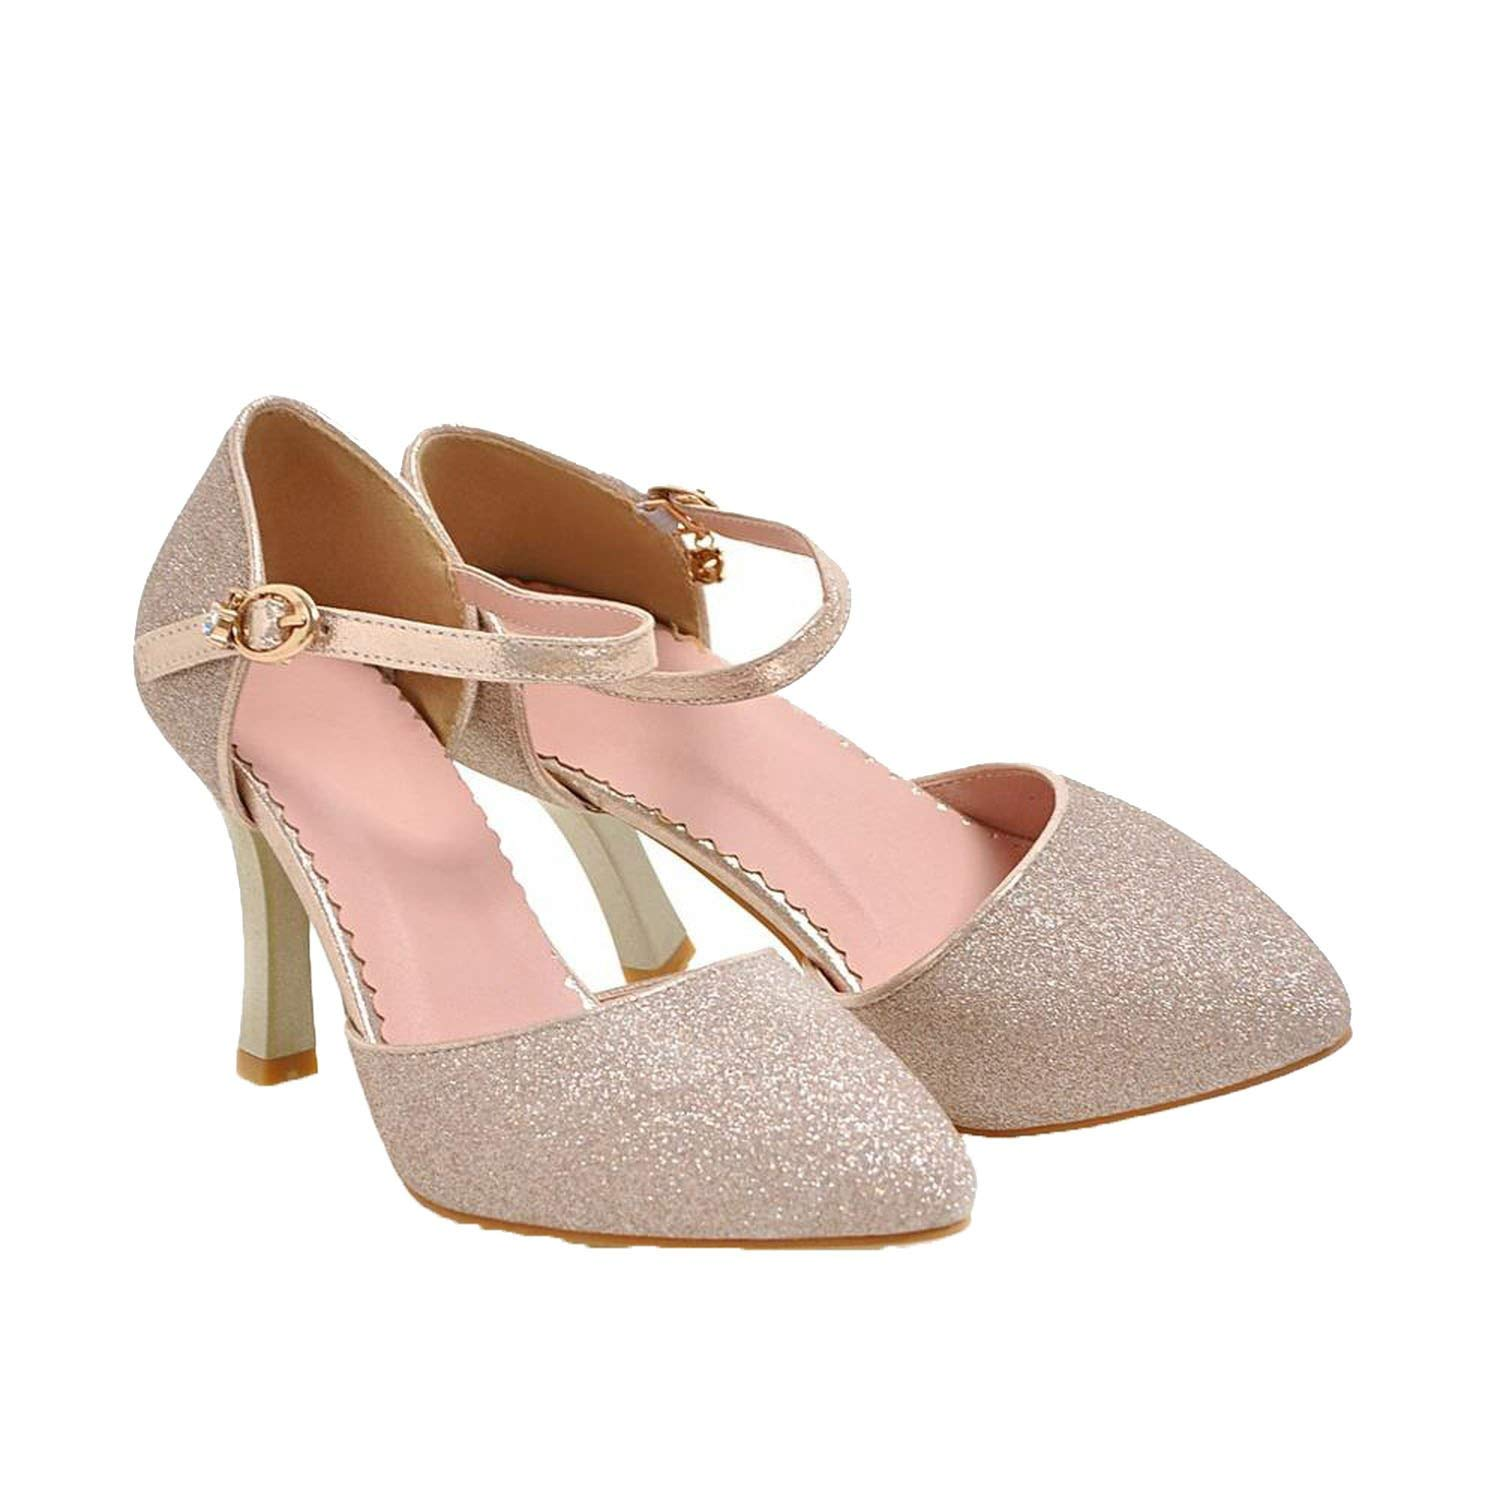 d991bfd4531 Cheap Double Ankle Strap Heels, find Double Ankle Strap Heels deals ...